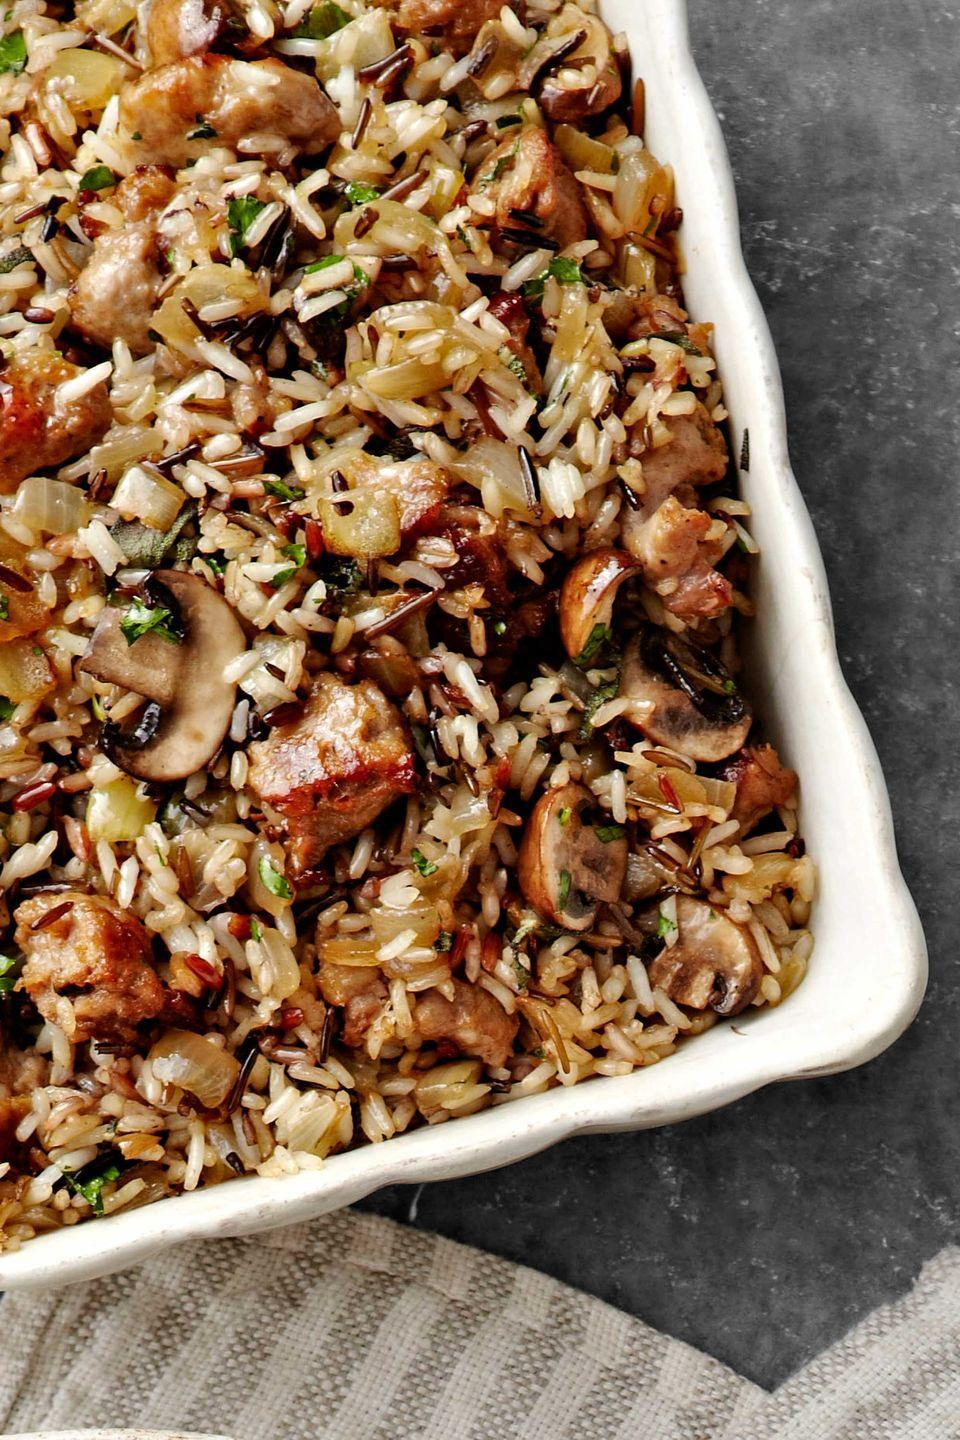 "<p class=""imageContent"">For this take on Thanksgiving dressing, two types of rice are cooked in a fragrant medley of mushrooms and onions sautéed in butter, bay leaf, and fresh sage.</p><p class=""imageContent""><strong><a href=""https://www.countryliving.com/food-drinks/recipes/a4234/wild-rice-basmati-dressing-sausage-sage-recipe-clv1112/"" rel=""nofollow noopener"" target=""_blank"" data-ylk=""slk:Get the recipe"" class=""link rapid-noclick-resp"">Get the recipe</a>.</strong></p>"